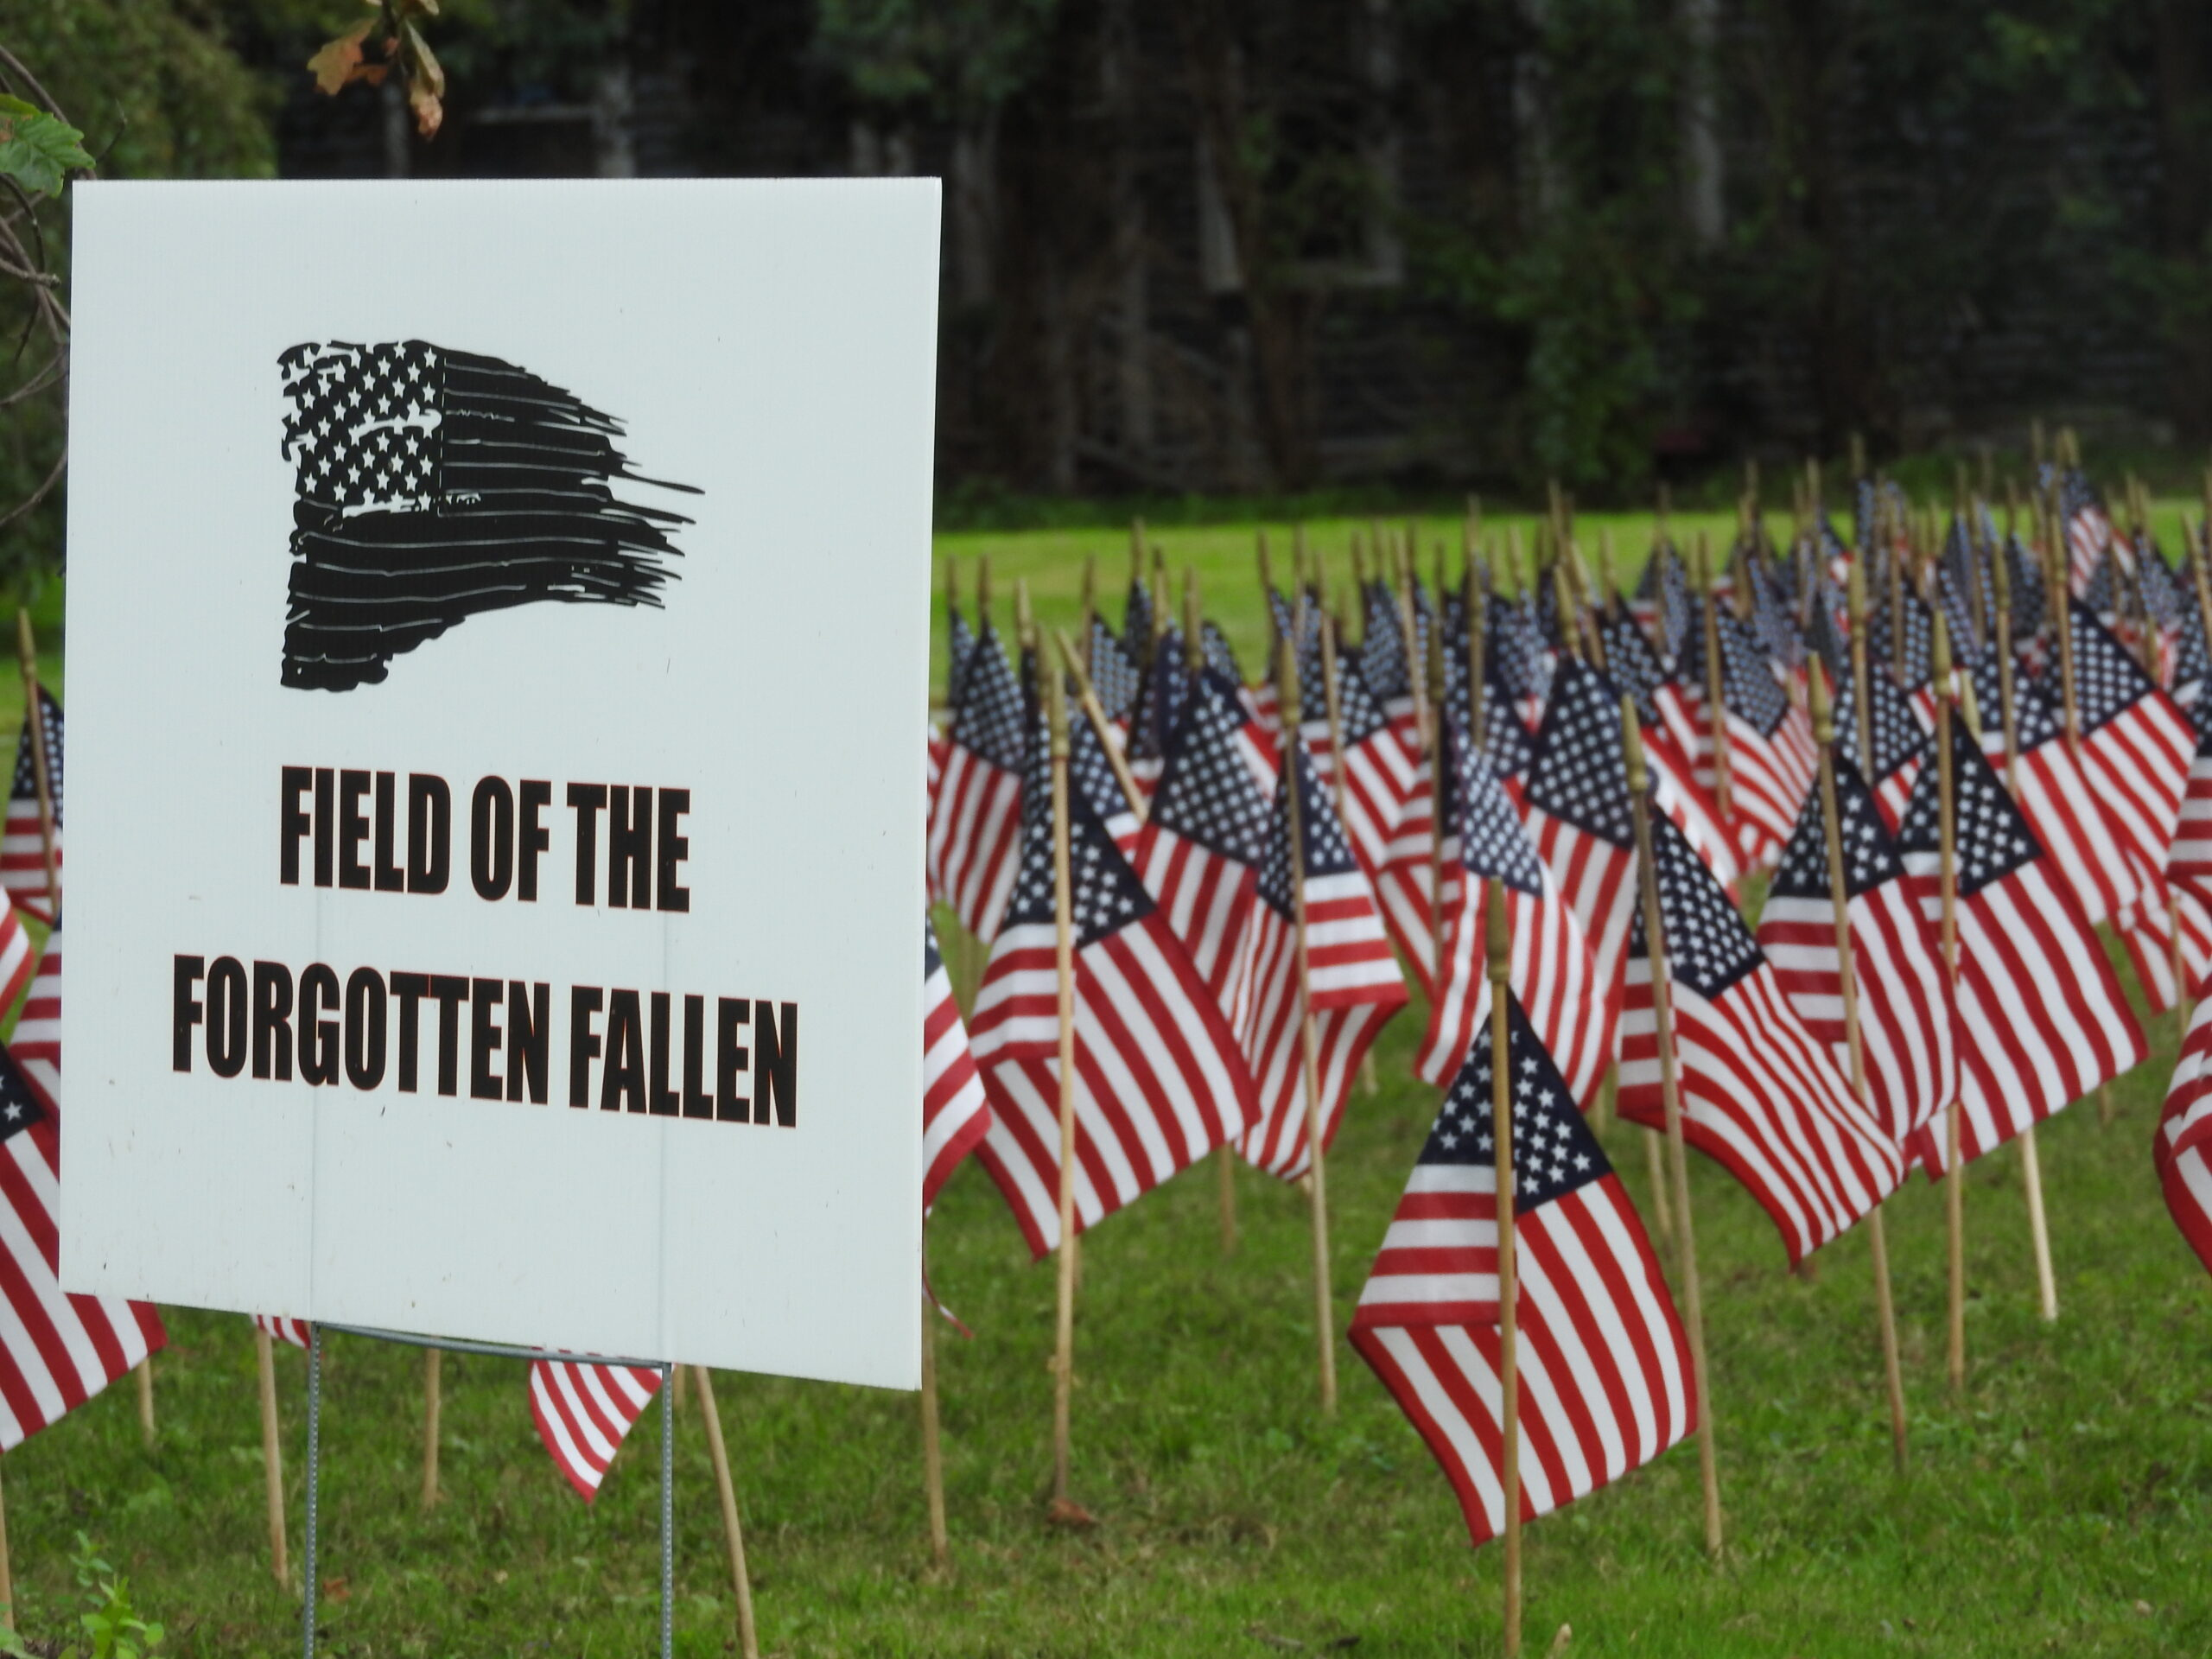 Tioga County pays homage through 'Field of Forgotten Fallen' display